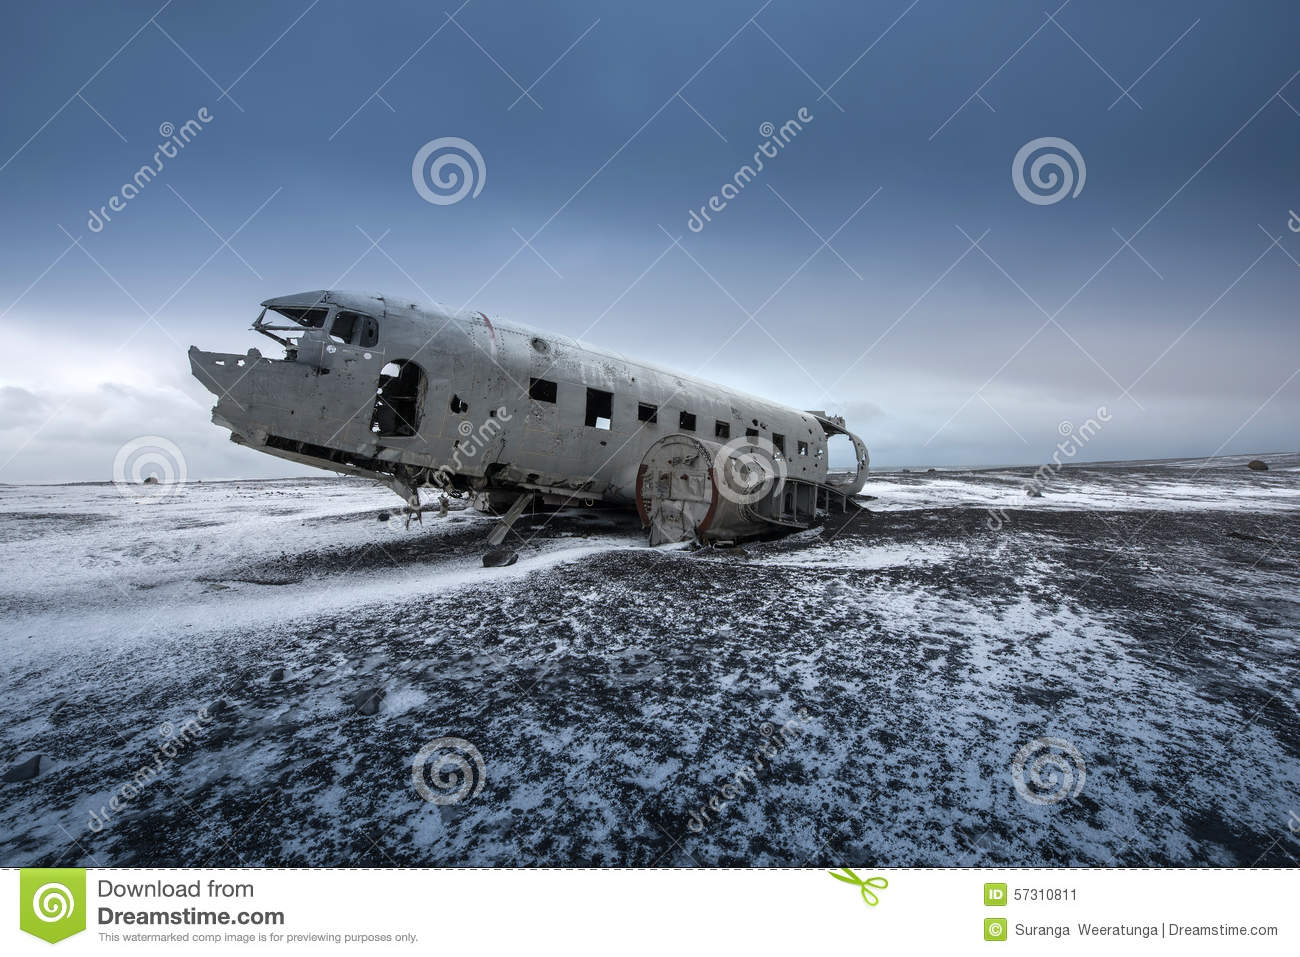 plane in clipart with Stock Photo Plane Wreck Black Beach Iceland South Image57310811 on Means Of Transport 47996161 in addition Royalty Free Stock Photos Flight Routes World Map Image14431478 besides Stock Photo Plane Wreck Black Beach Iceland South Image57310811 likewise Dor Nos Pes E Tornozelos likewise Stock Image Airplane Wings Isolated White Background Bottom View Image33299351.